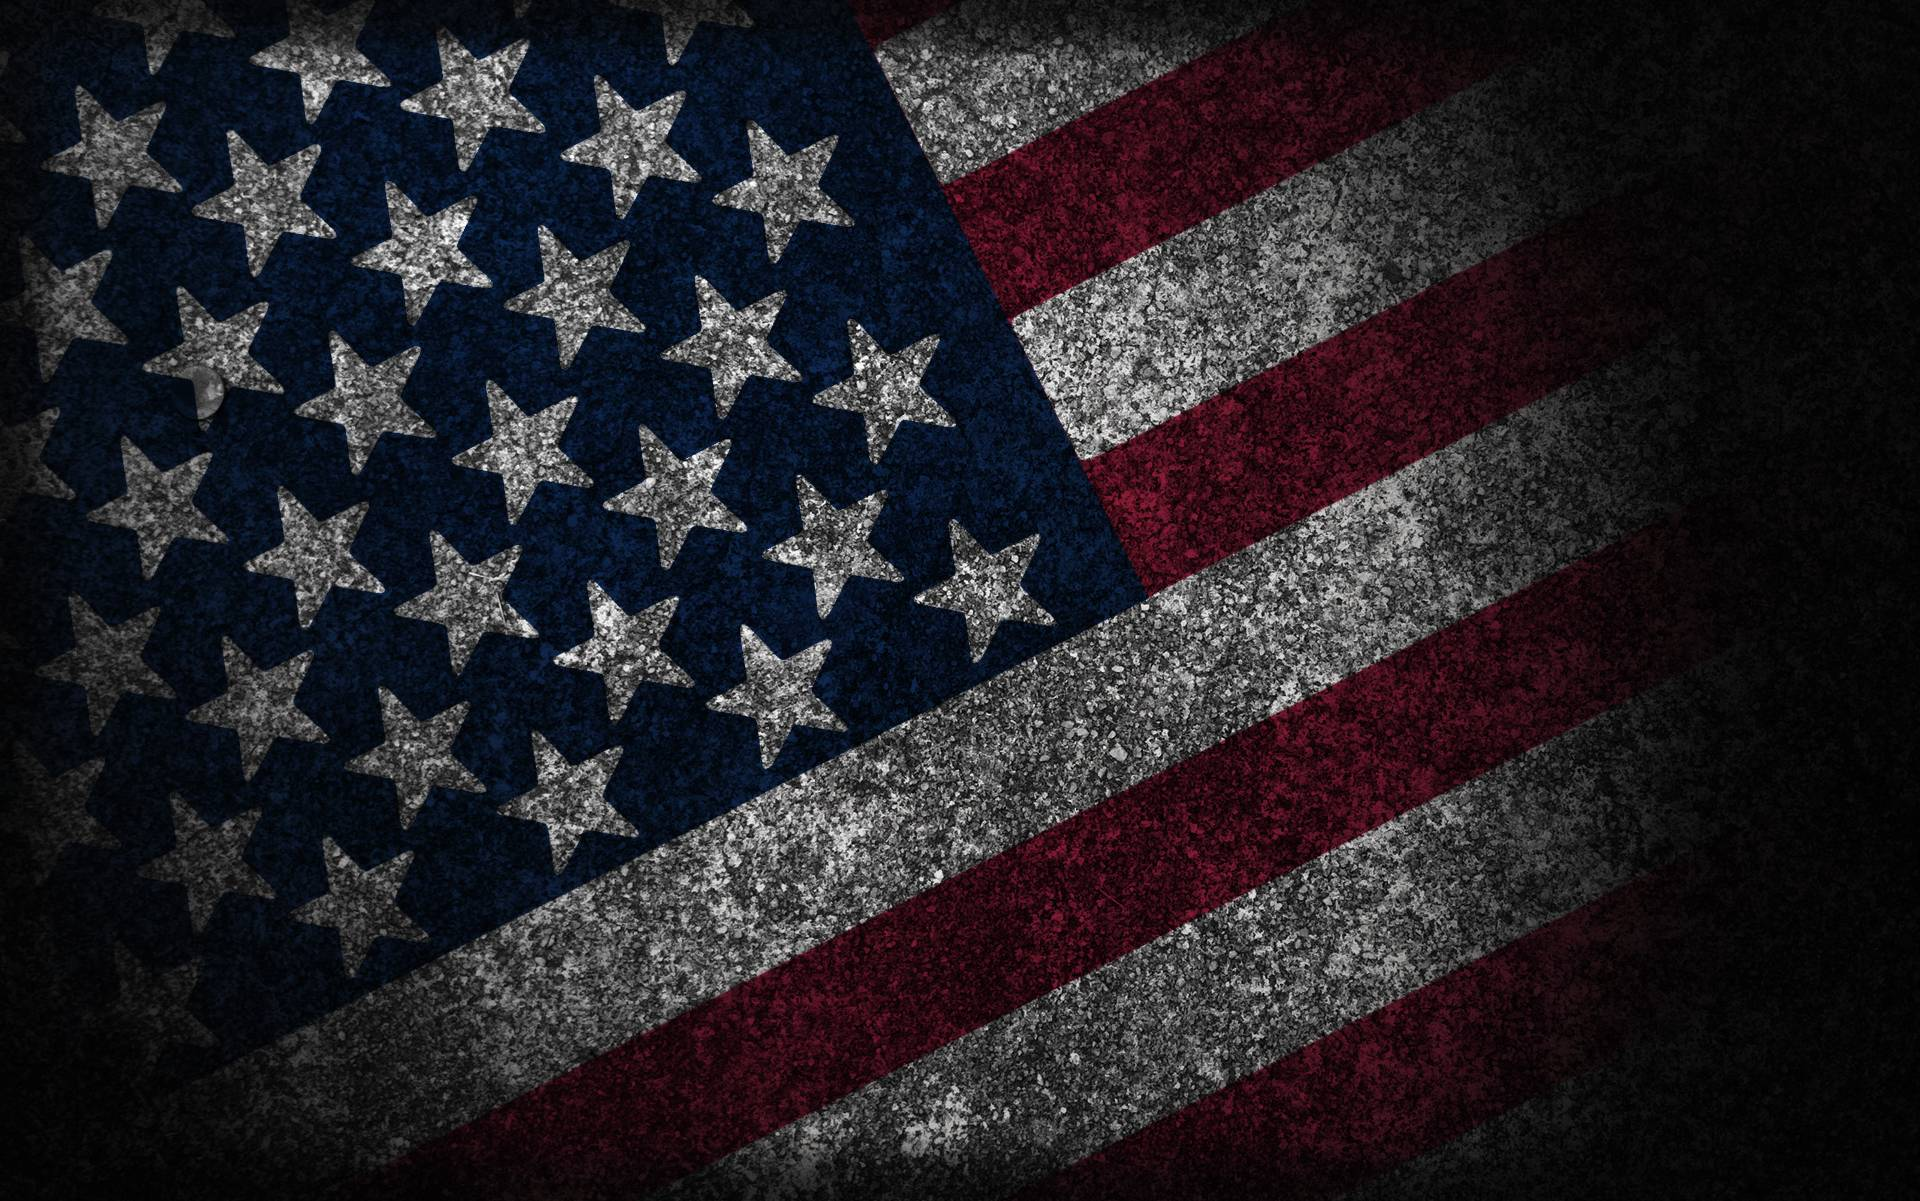 American Flag Wallpaper 1920x1200 By Hassified On Deviantart